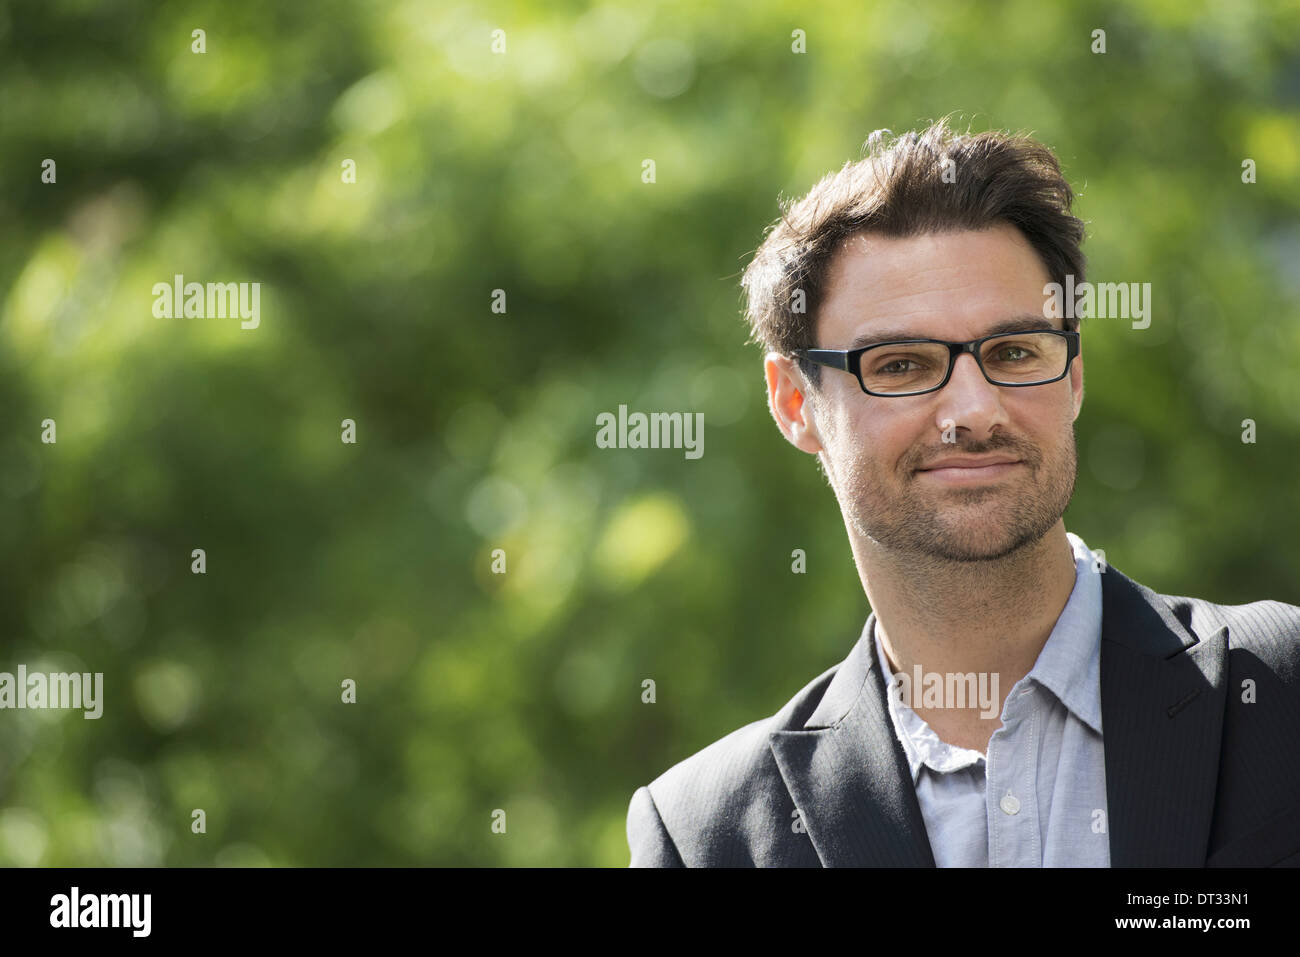 A man with short dark hair and glasses Smiling at the camera - Stock Image